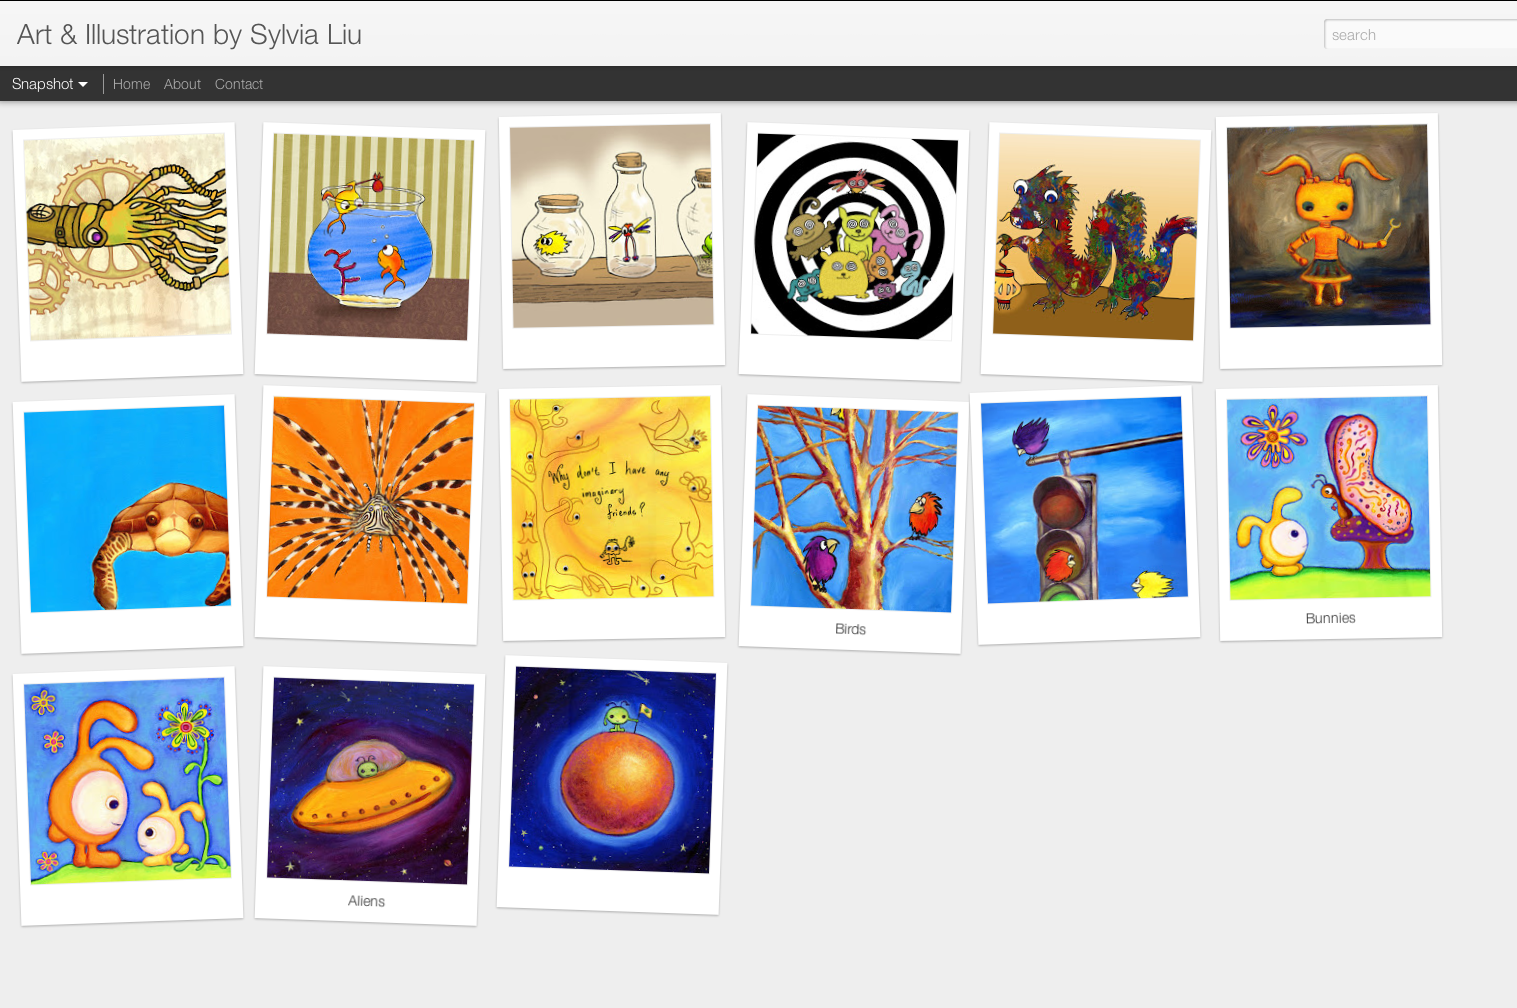 sylvia liu land how to make an art portfolio on blogger sylvia liu art illustration portfolio in blogger dynamic view